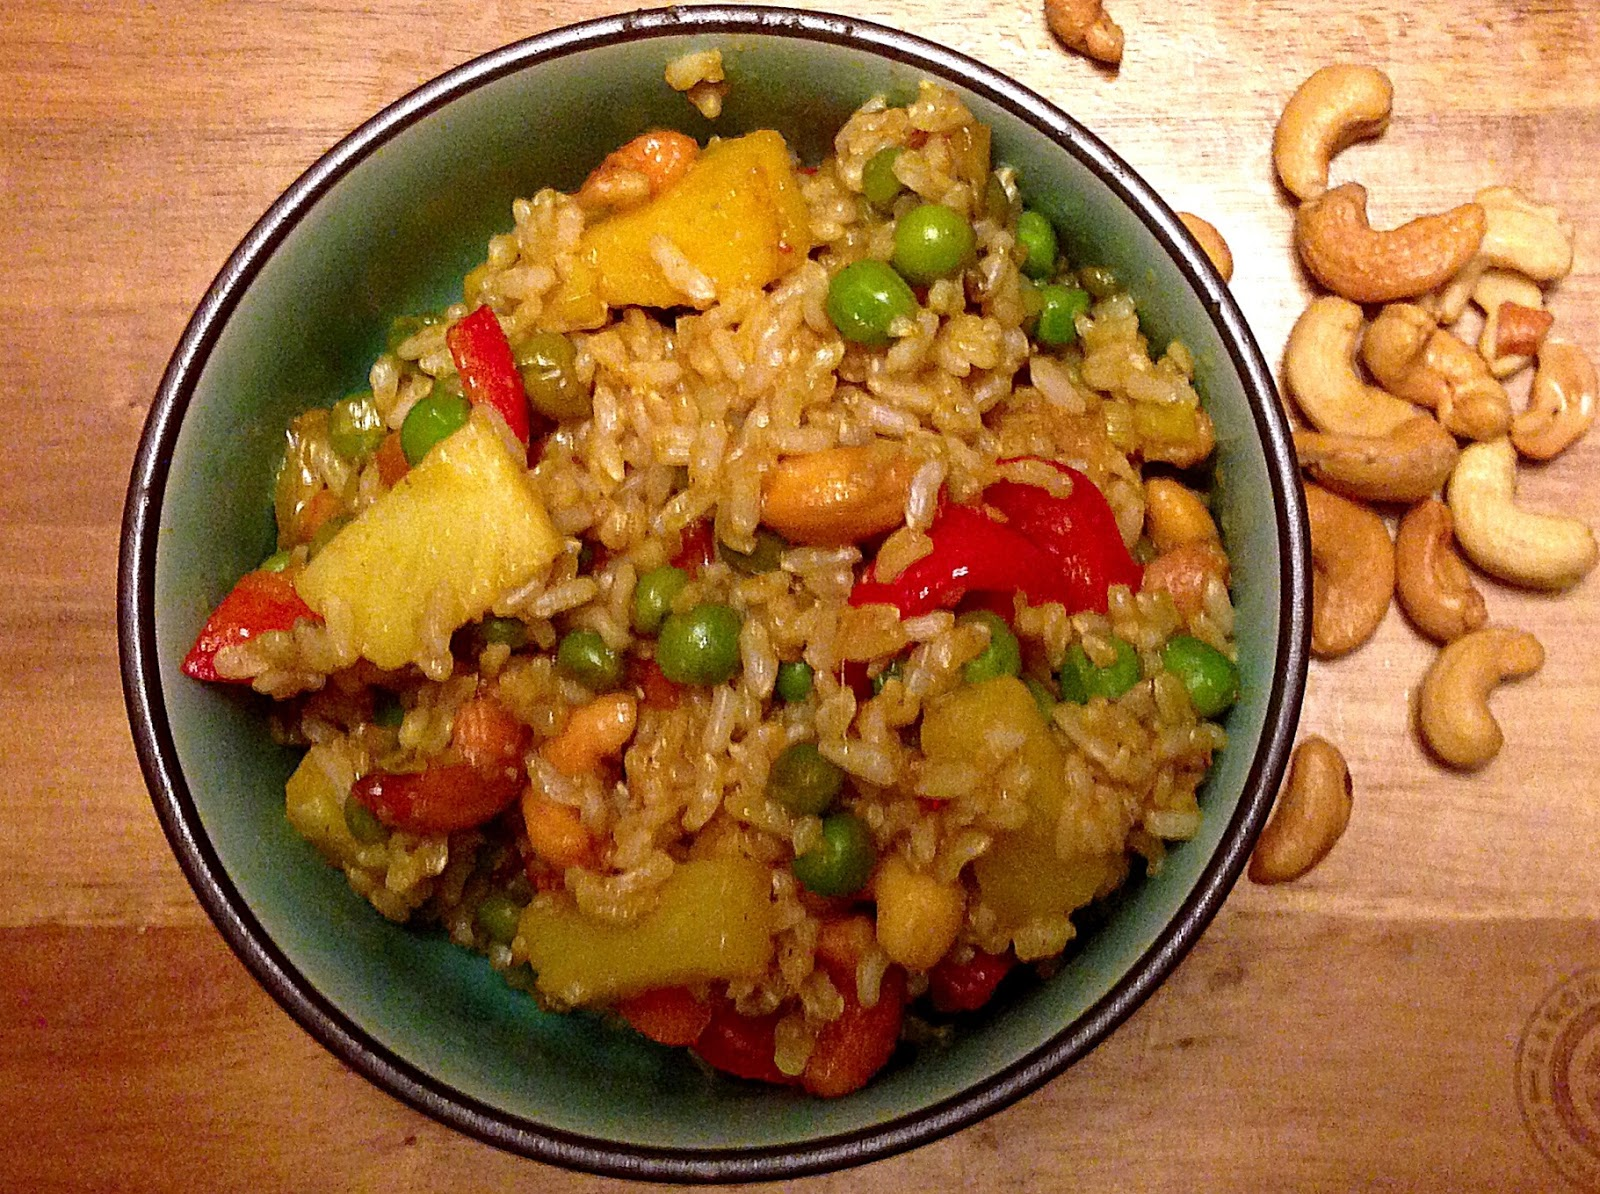 Make your own Pineapple Fried Rice! It'll be amazing.